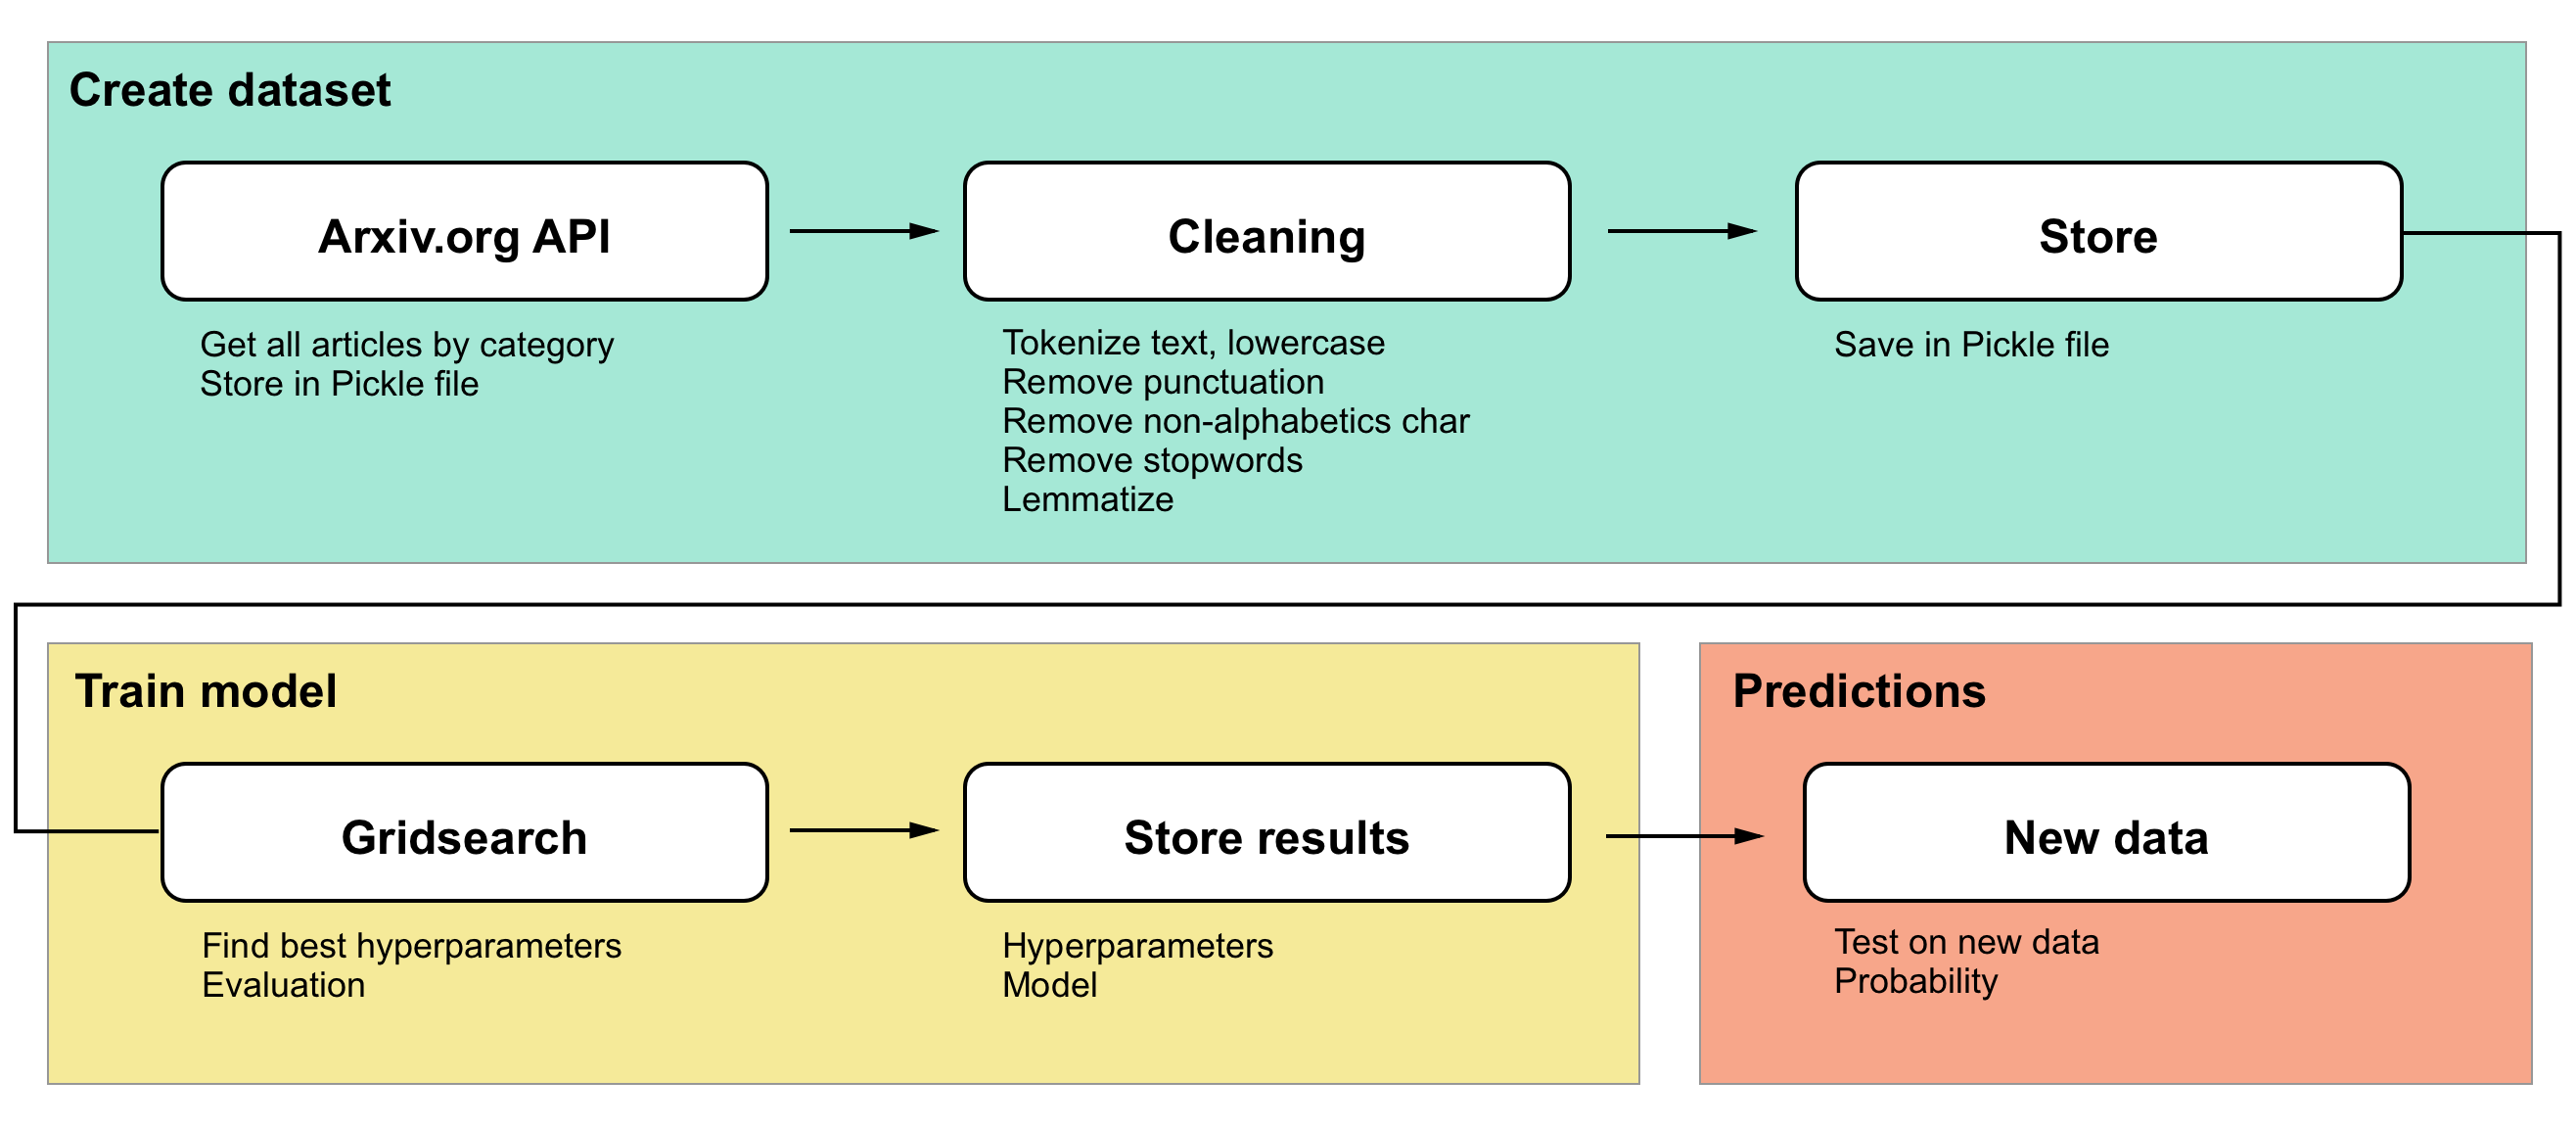 NLP classification: Determine Hackernews post category with